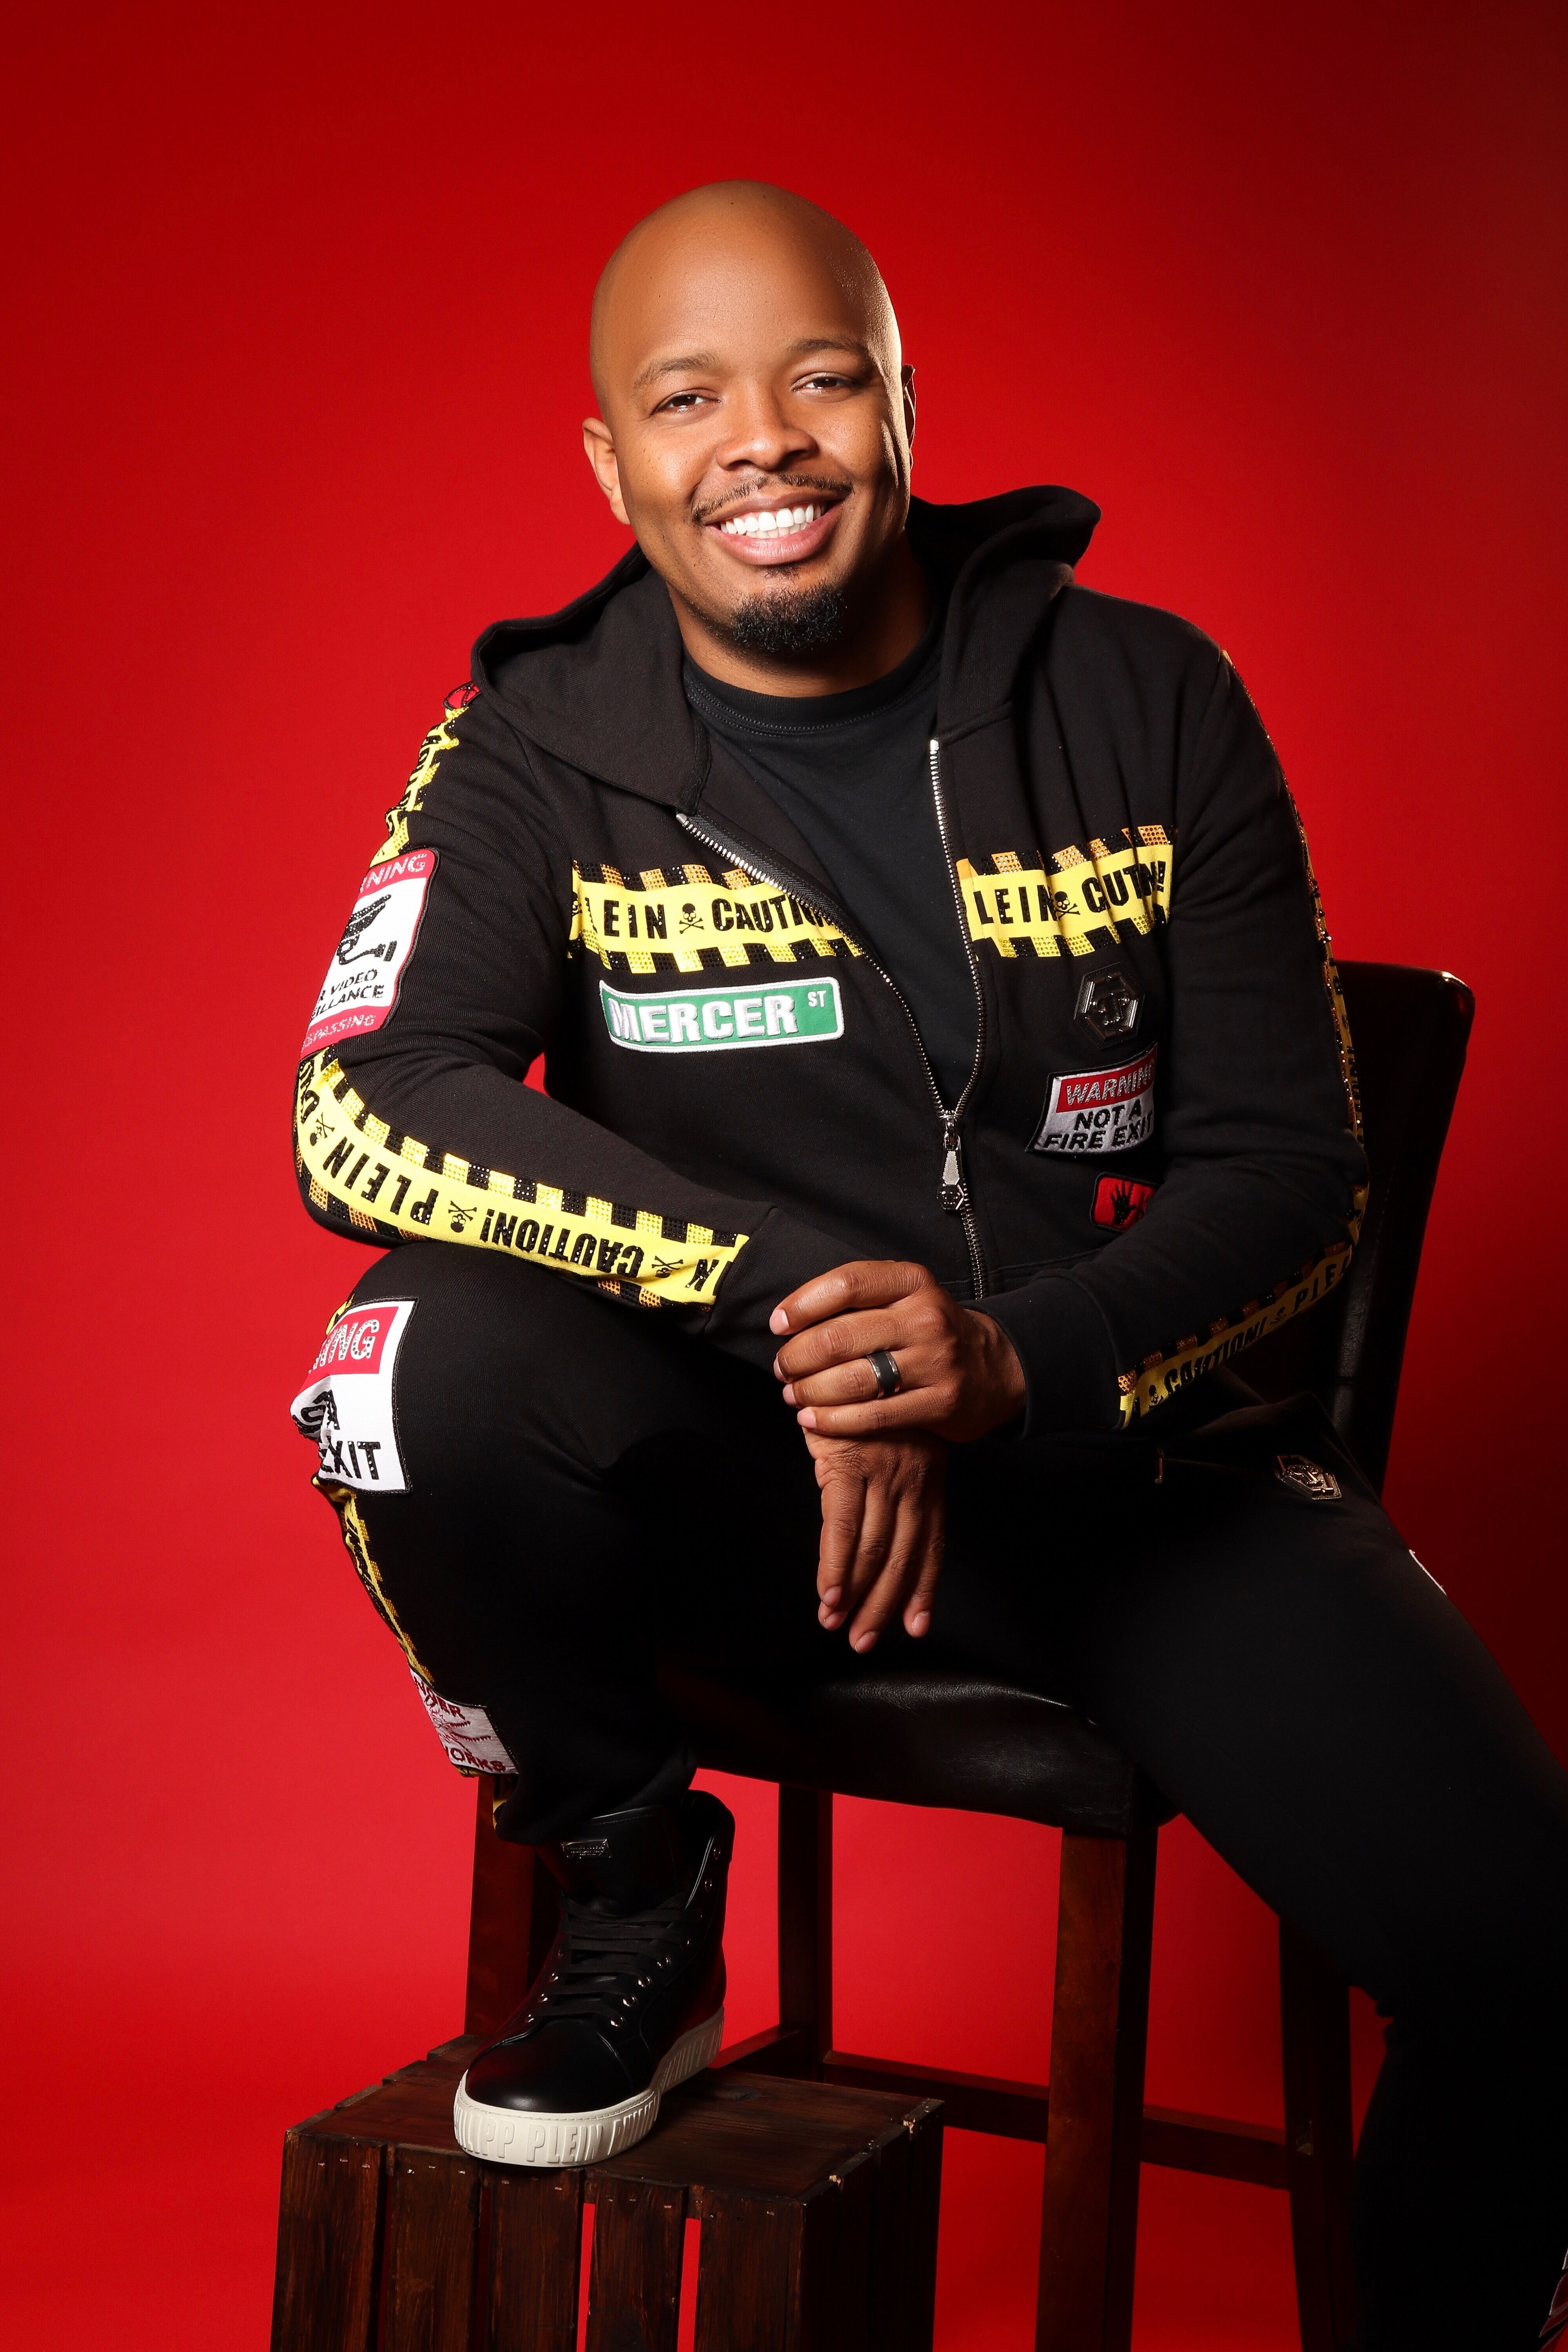 kevonstage comedy social media comedian tour